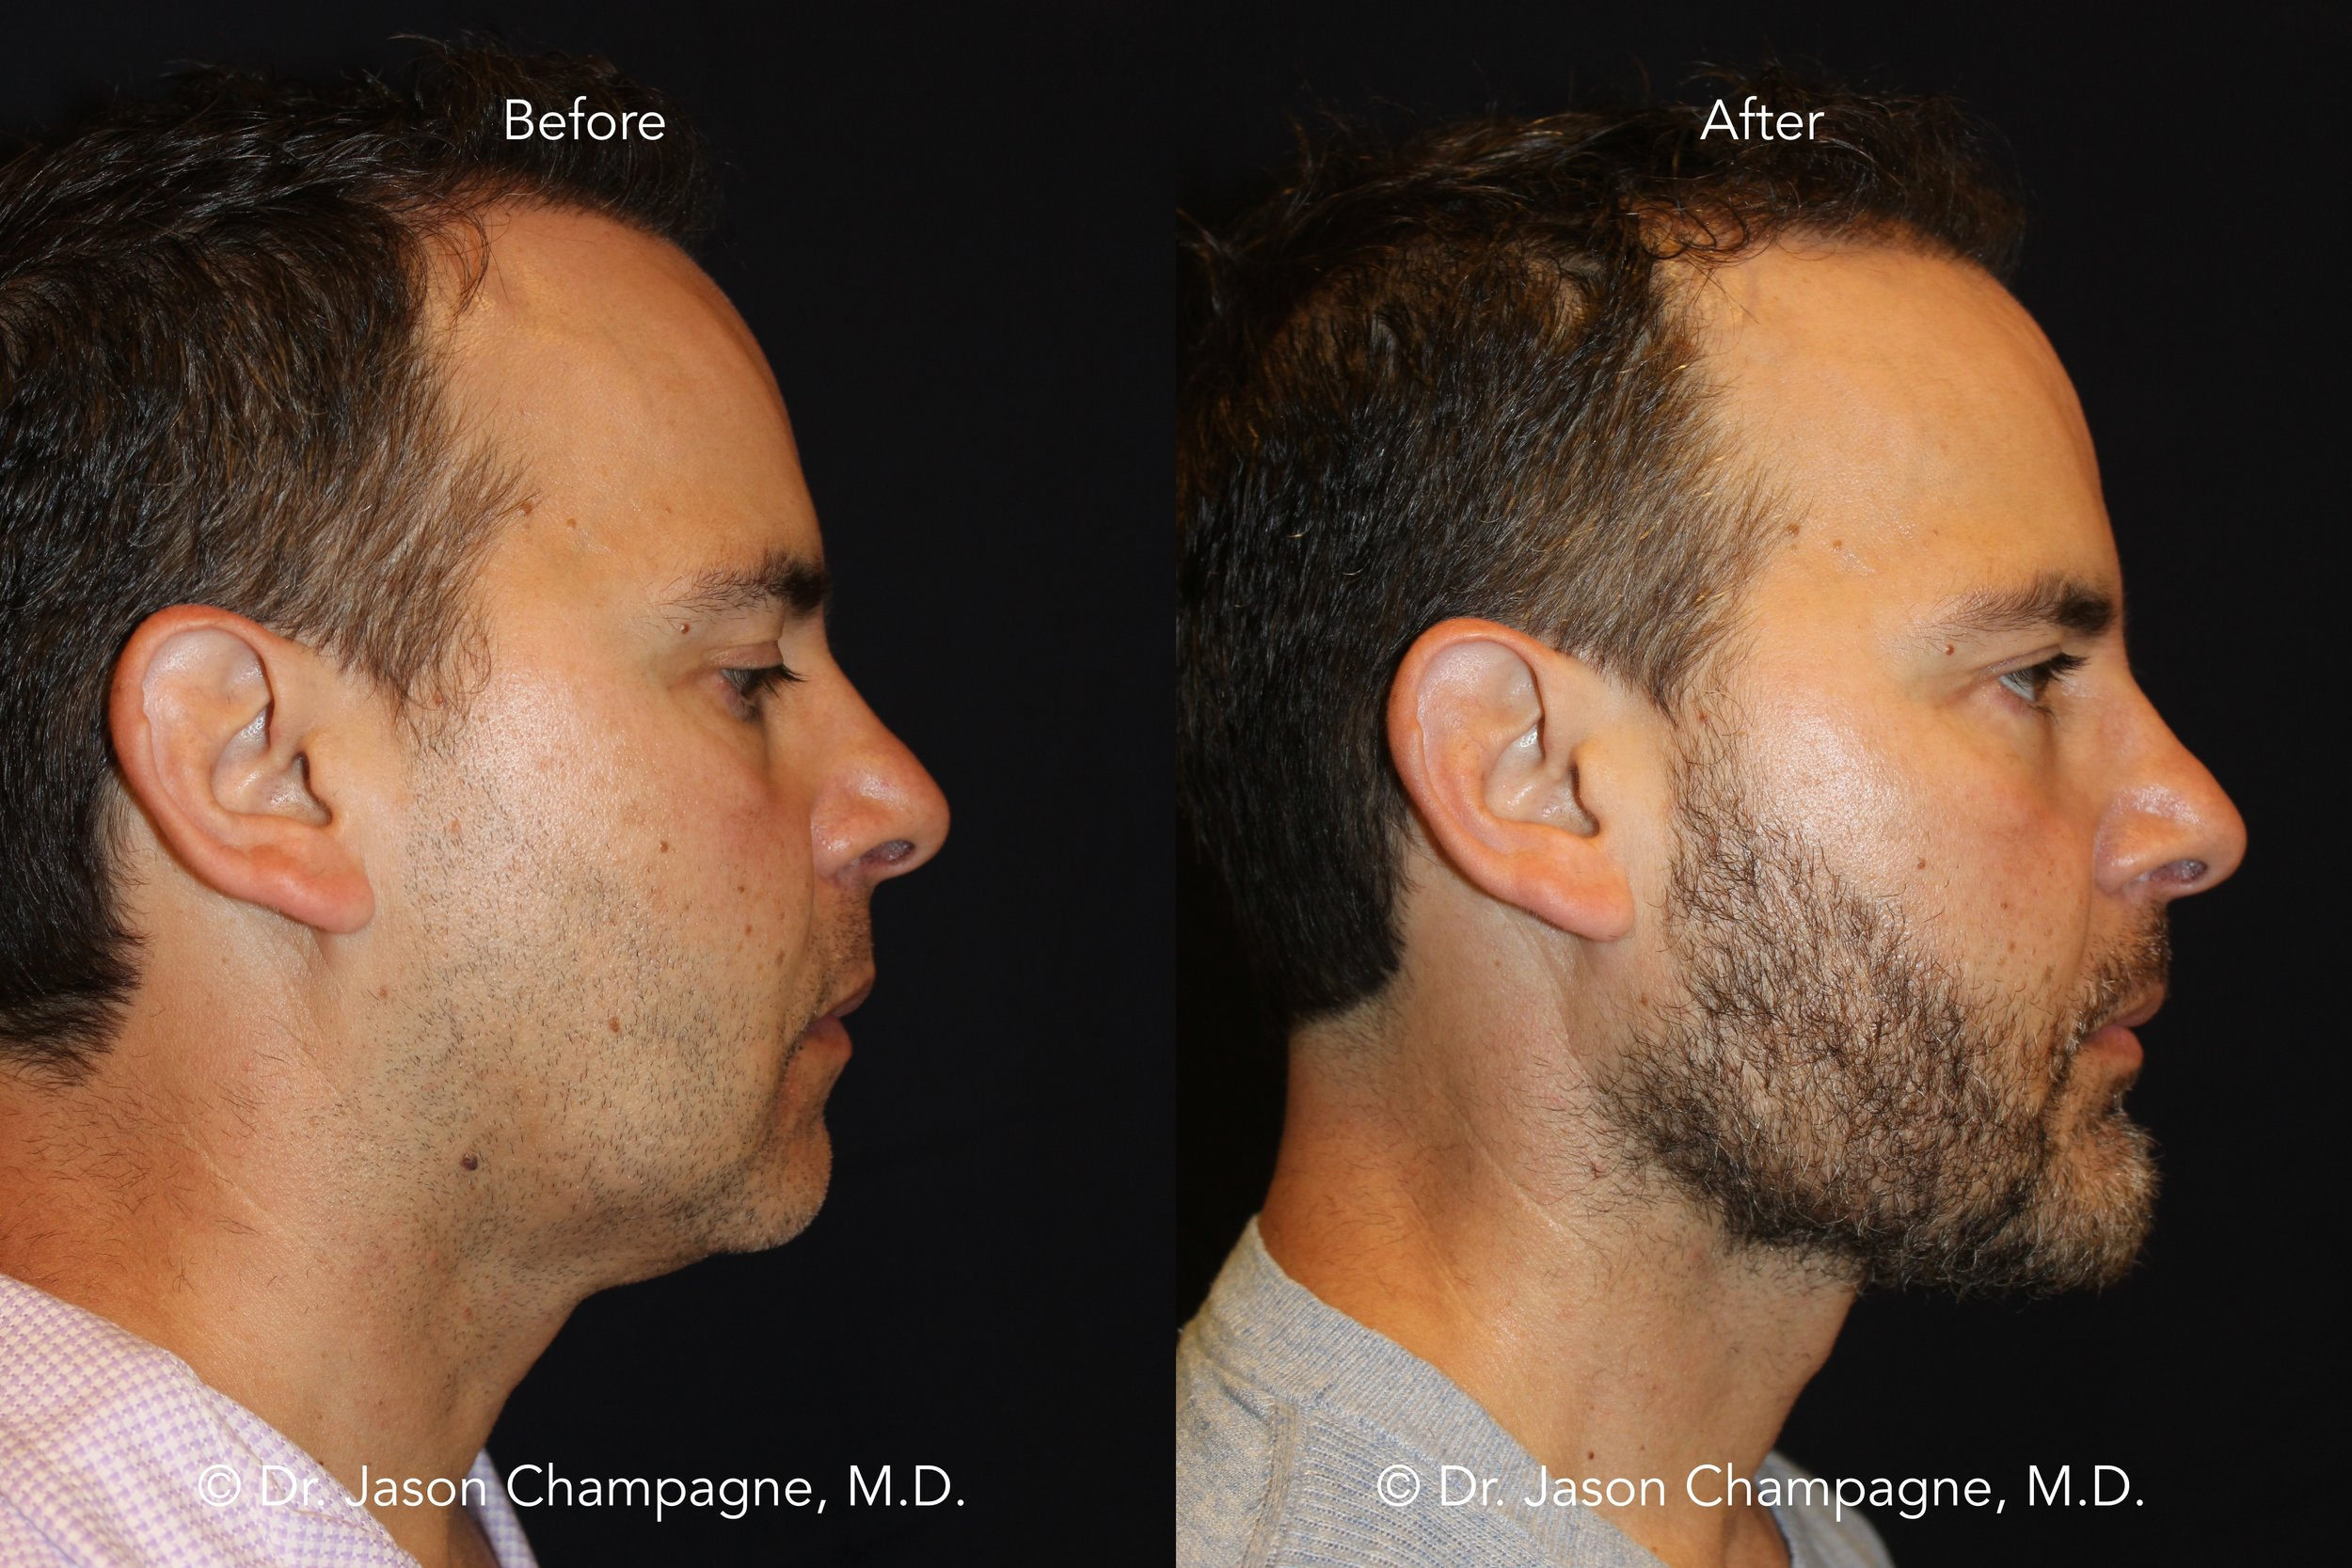 Dr-Jason-Champagne-Facial-Plastic-Surgery-Beverly-Hills-Fat-Transfer-and-Custom-Chin-and-Jaw-RFAL-Before-and-After-2